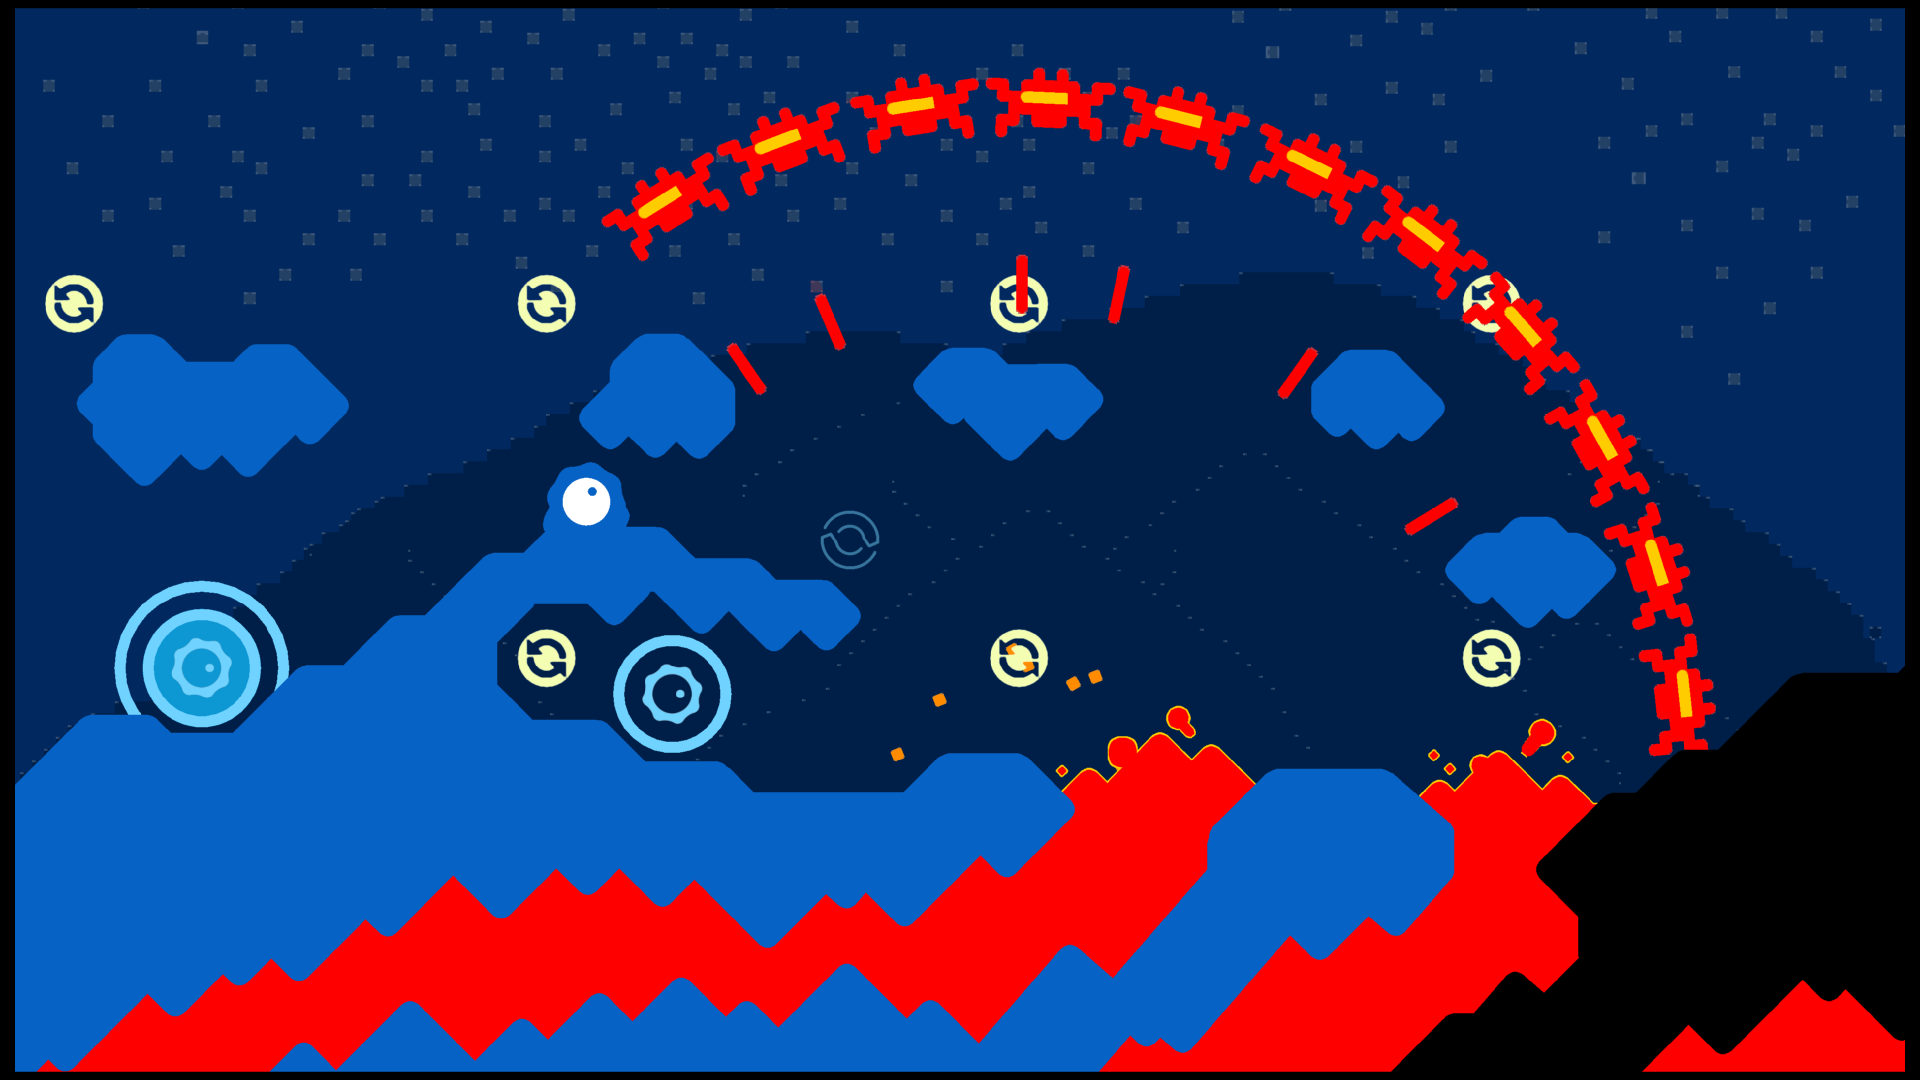 Shuhei yoshida clipart image black and white download Sound Shapes Debuts On the PS4 With More Music and Levels By ... image black and white download